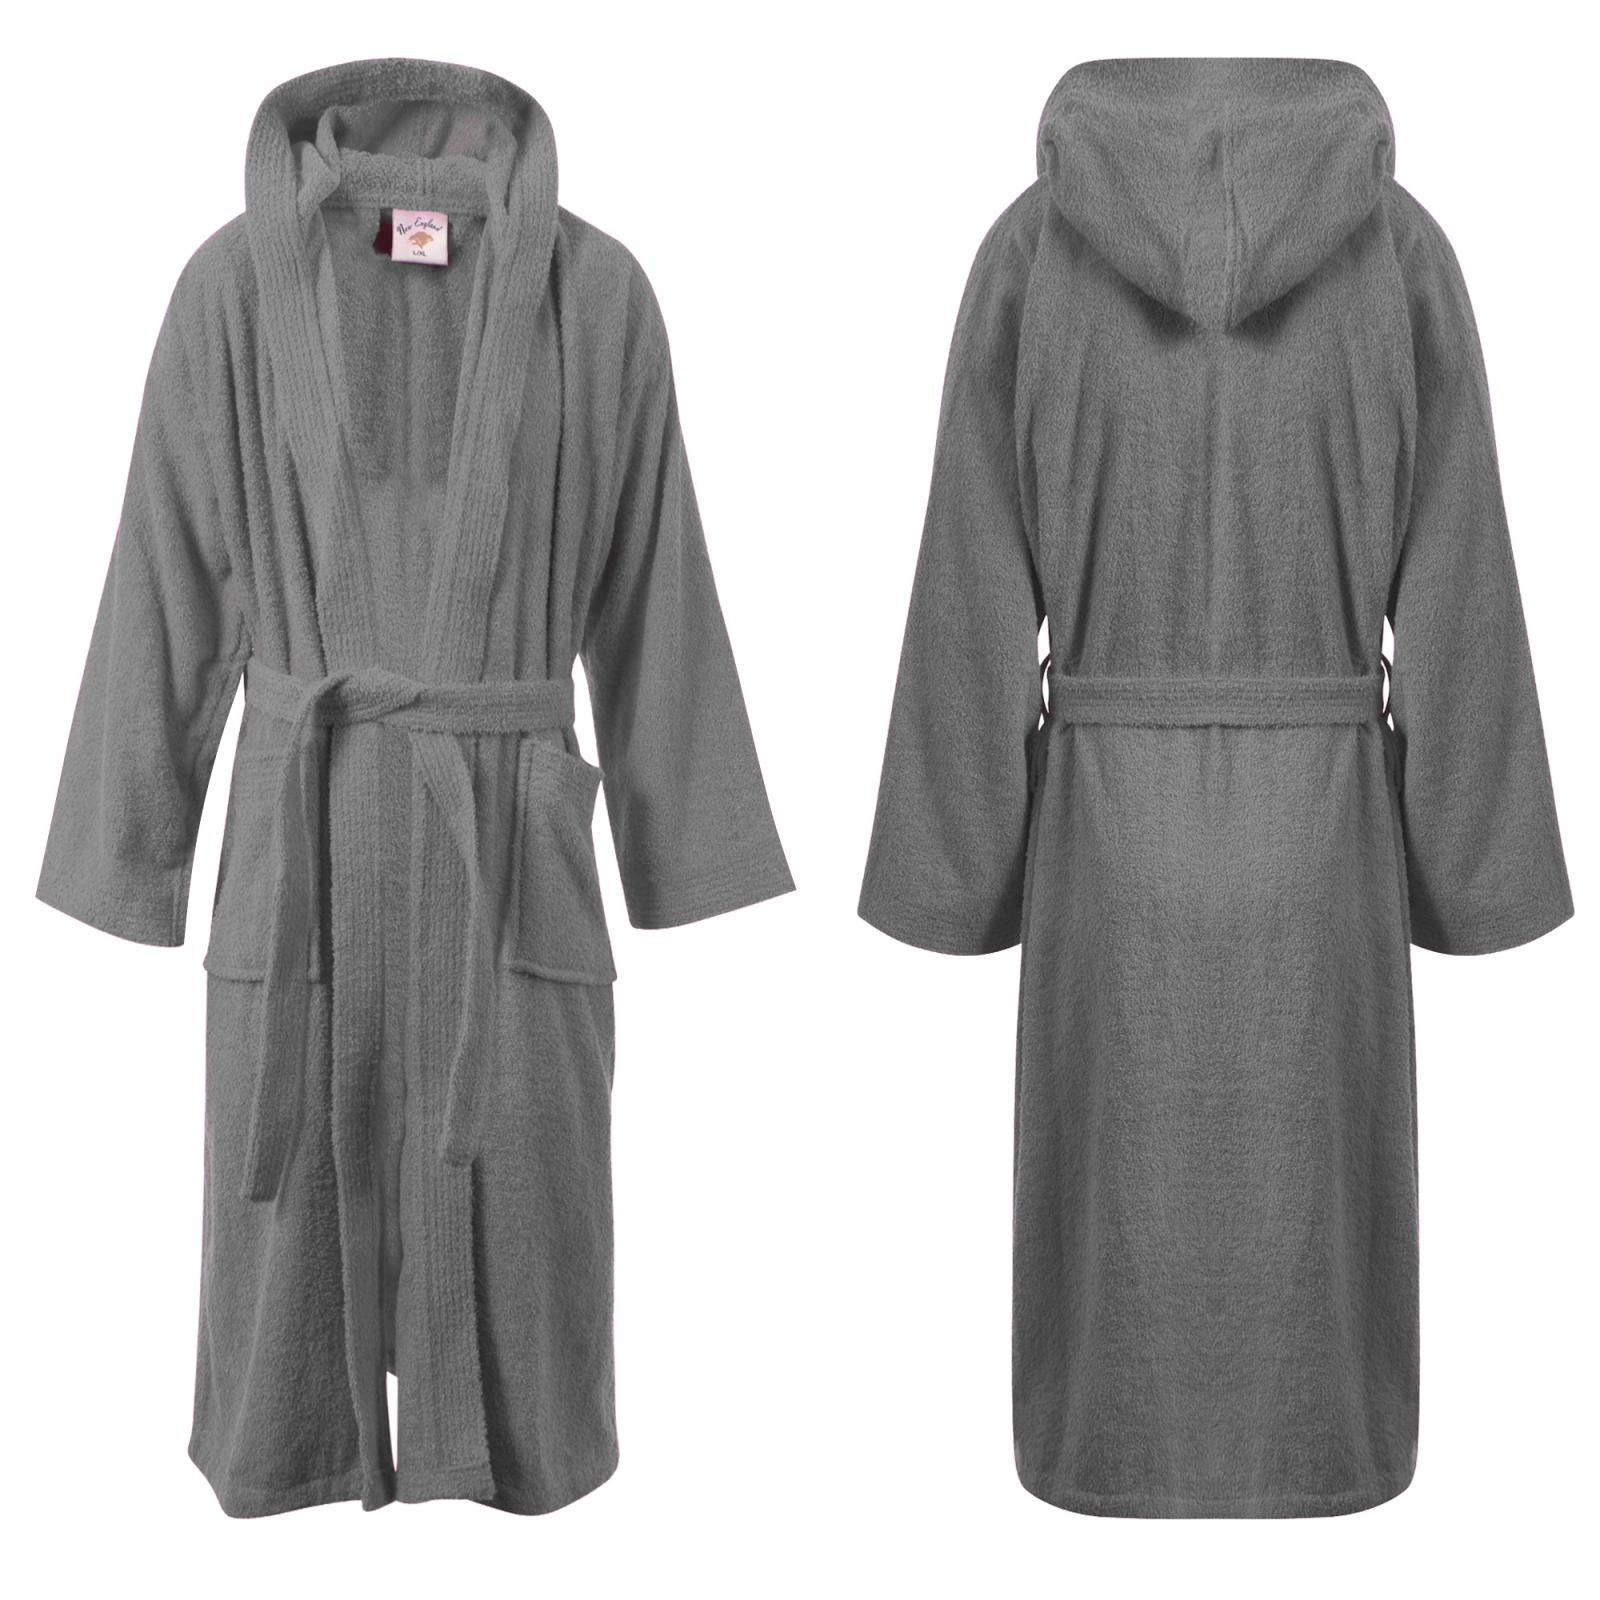 ladies mens womens 100 cotton hooded bath robe terry towelling dressing gown. Black Bedroom Furniture Sets. Home Design Ideas